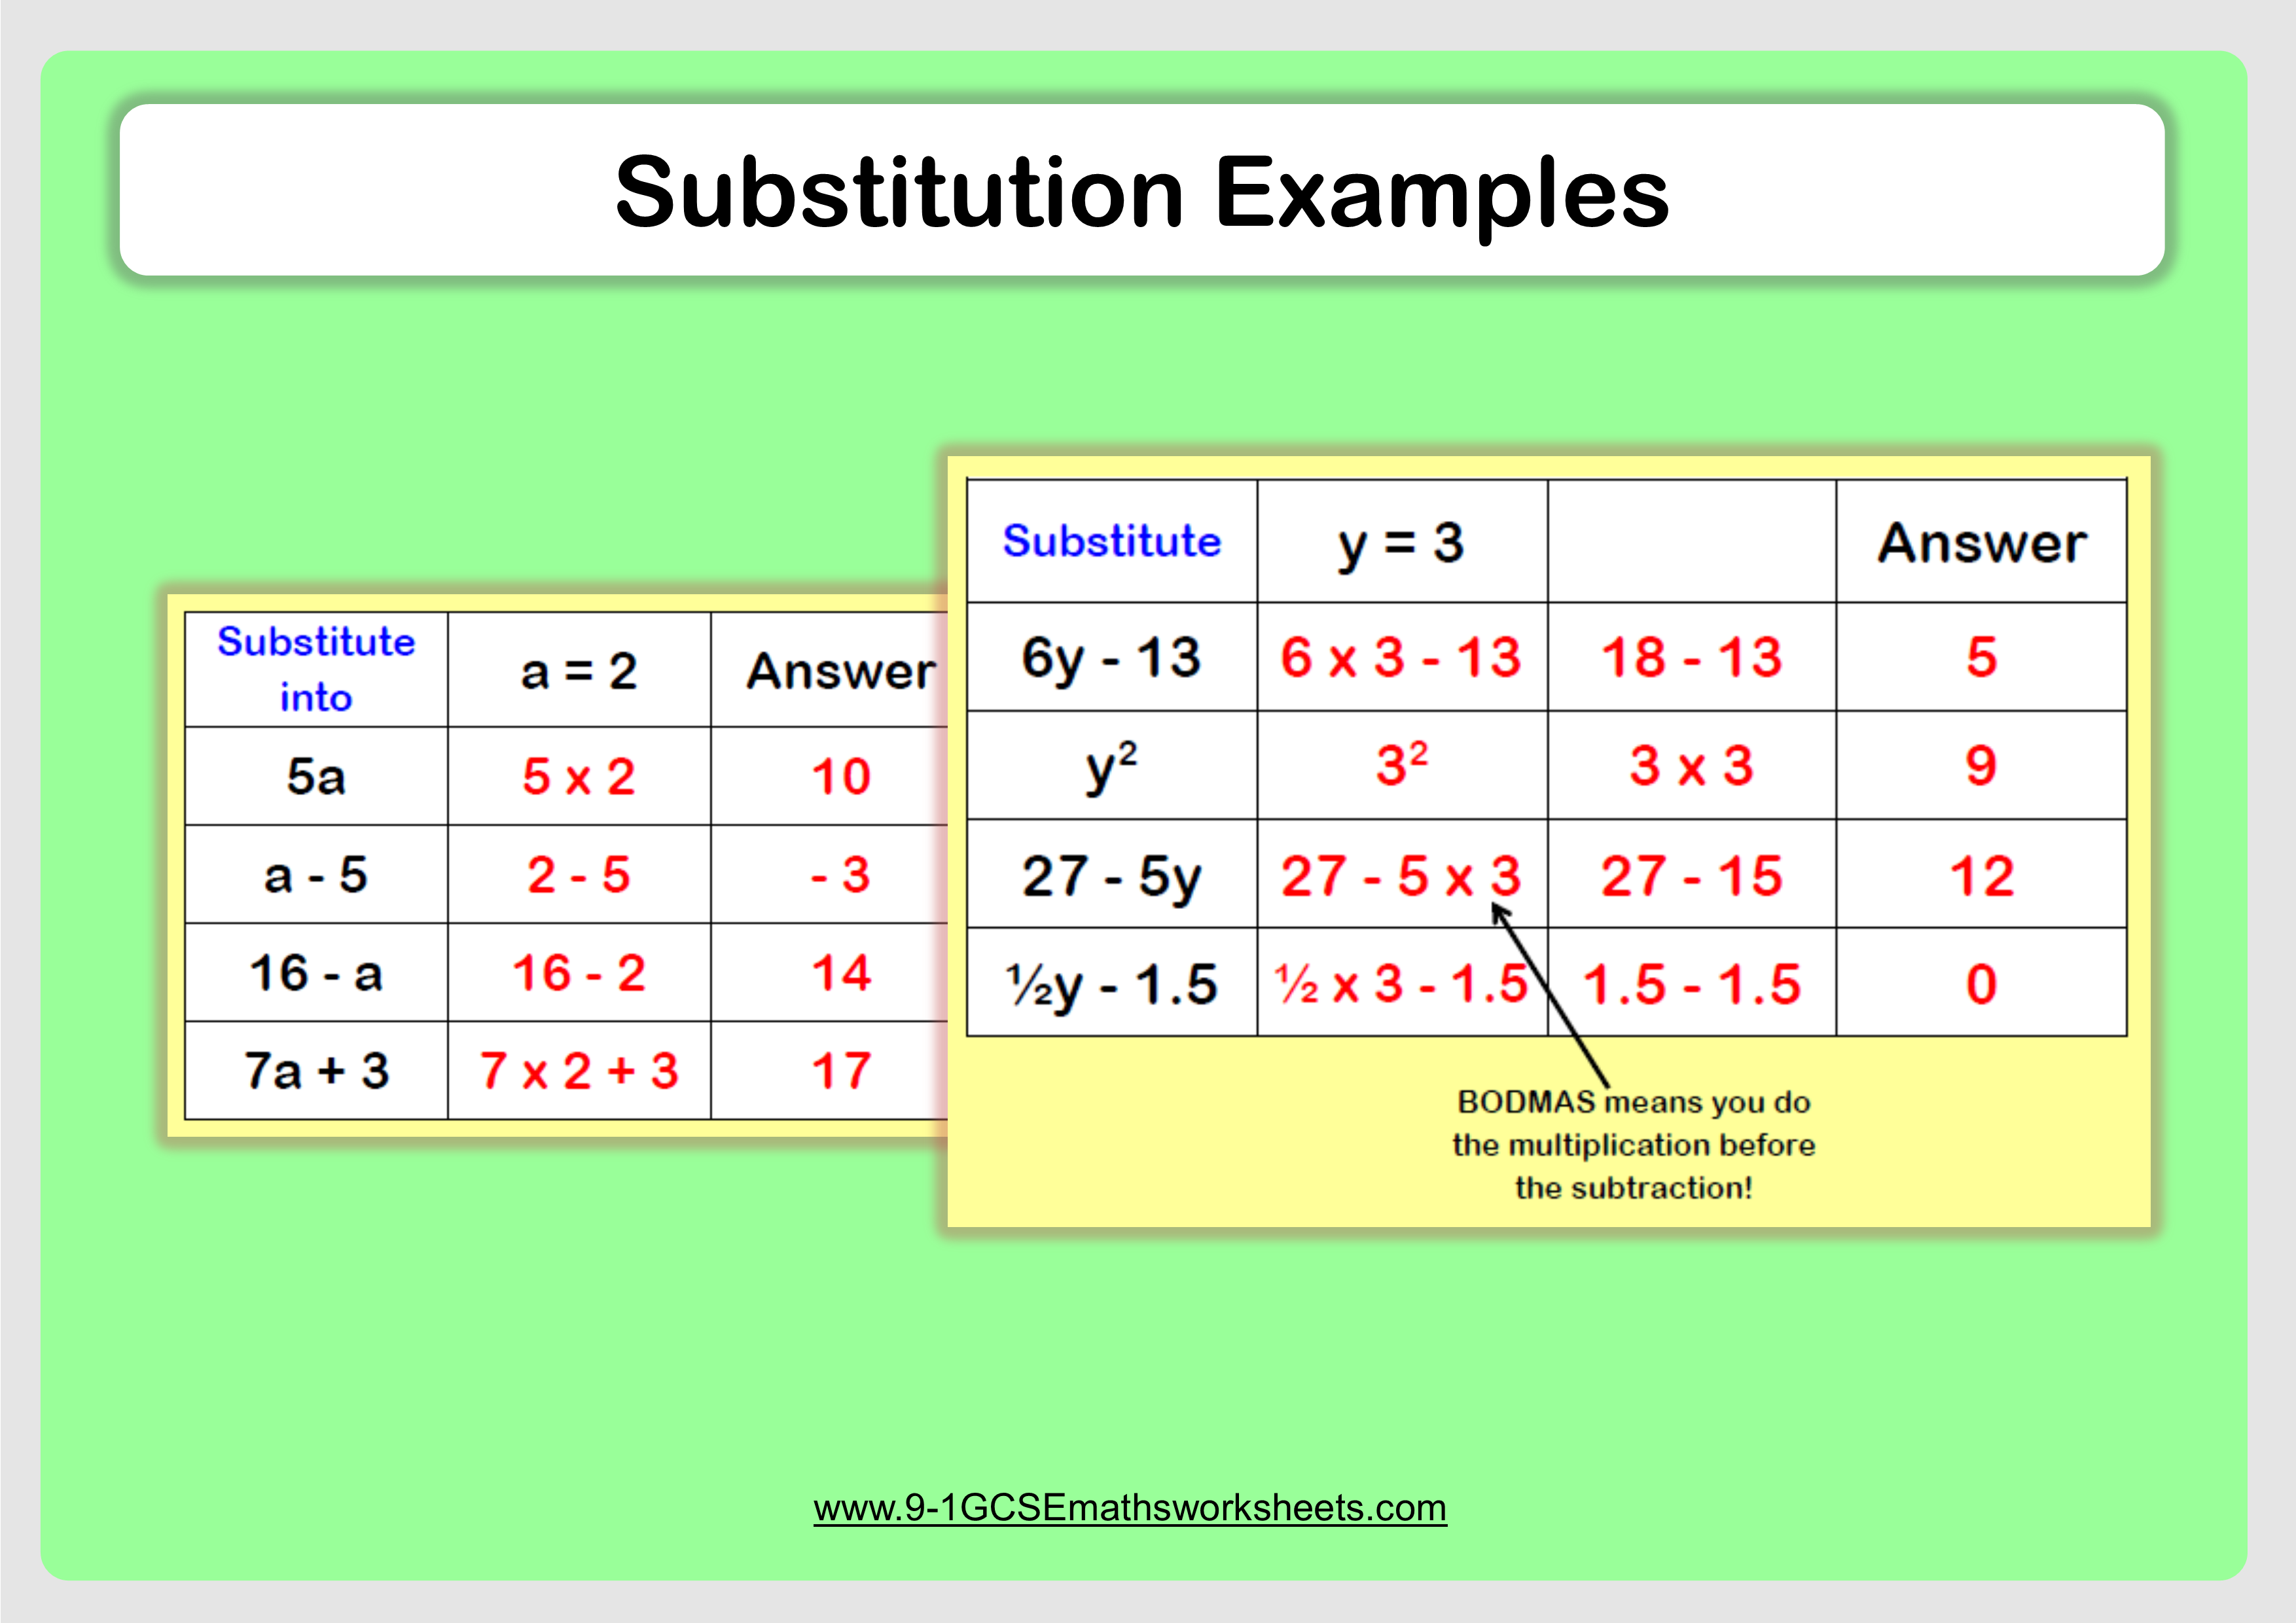 Substitution Example And Possible Starter